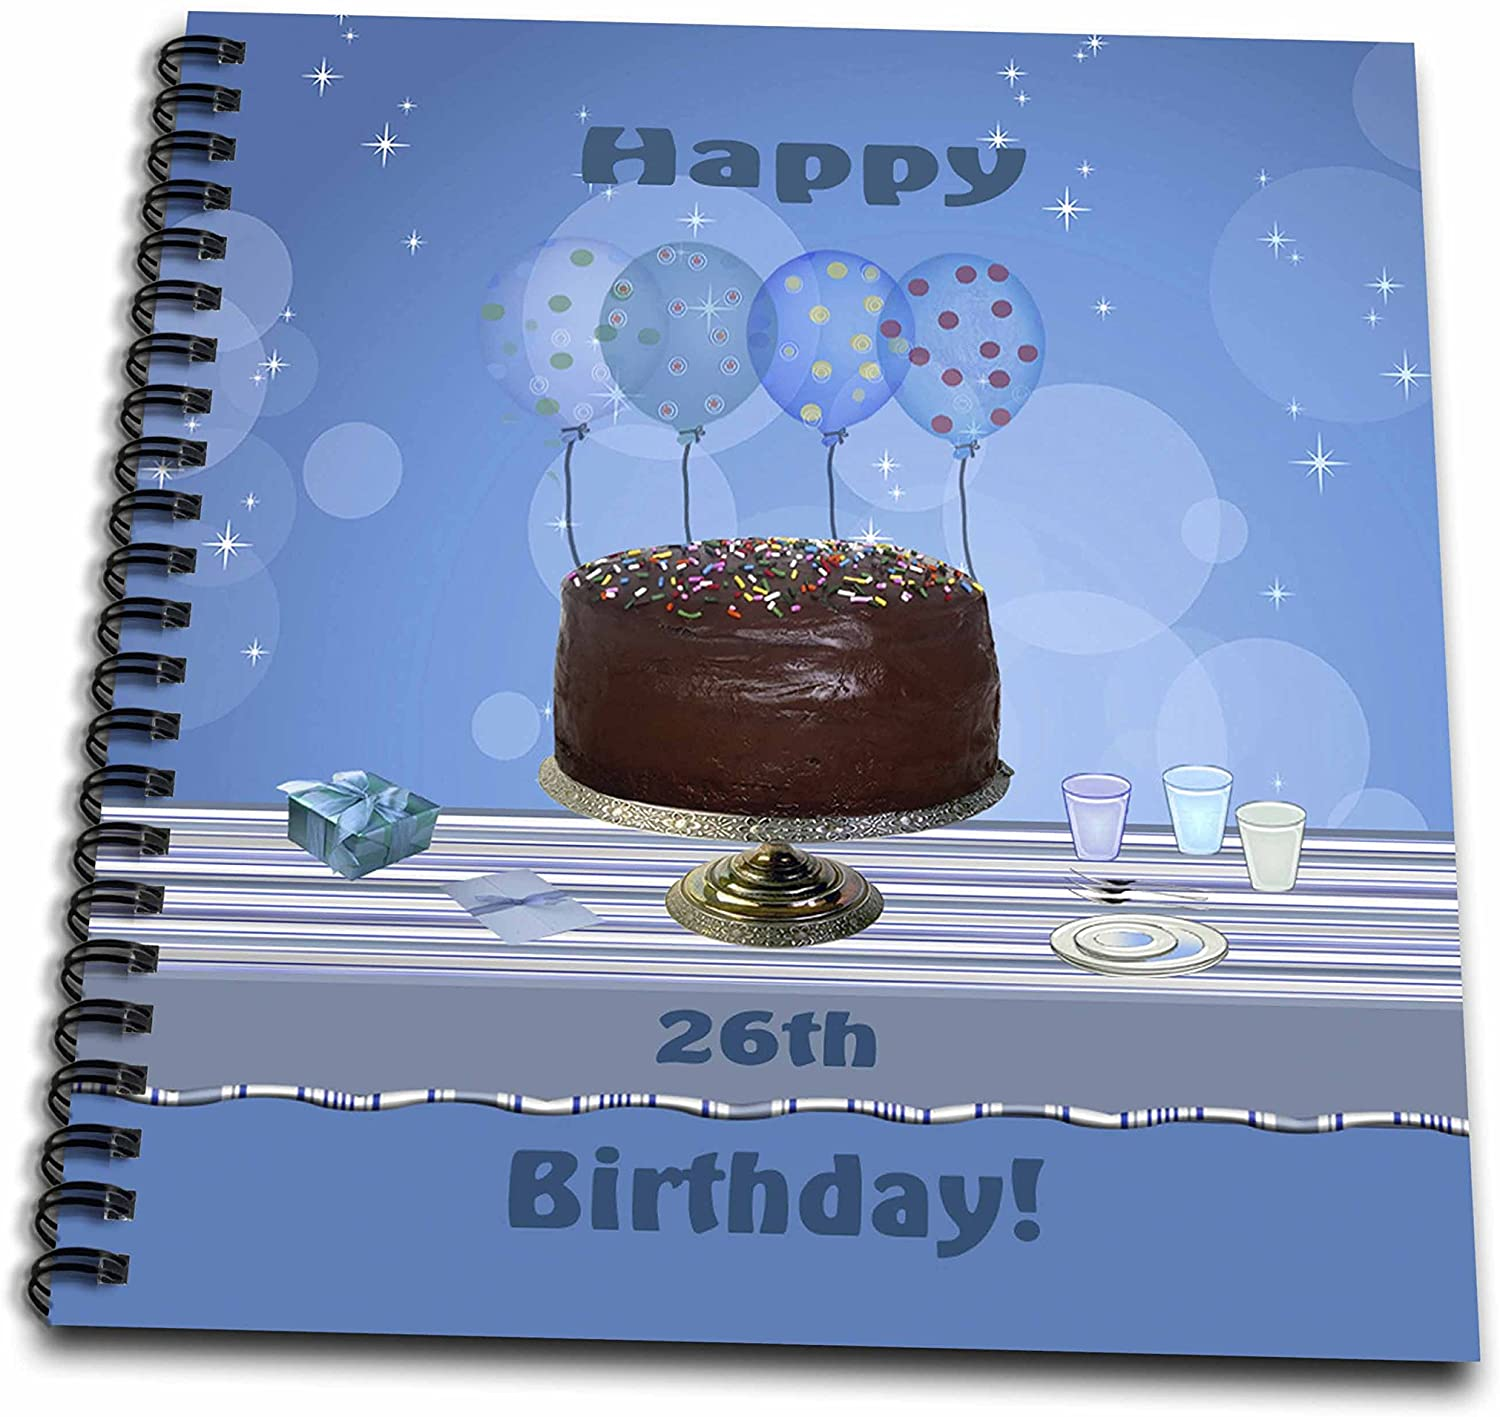 3dRose db_123912_2 26th Birthday Party with Chocolate Cake and Blue Balloons Memory Book, 12 by 12-Inch